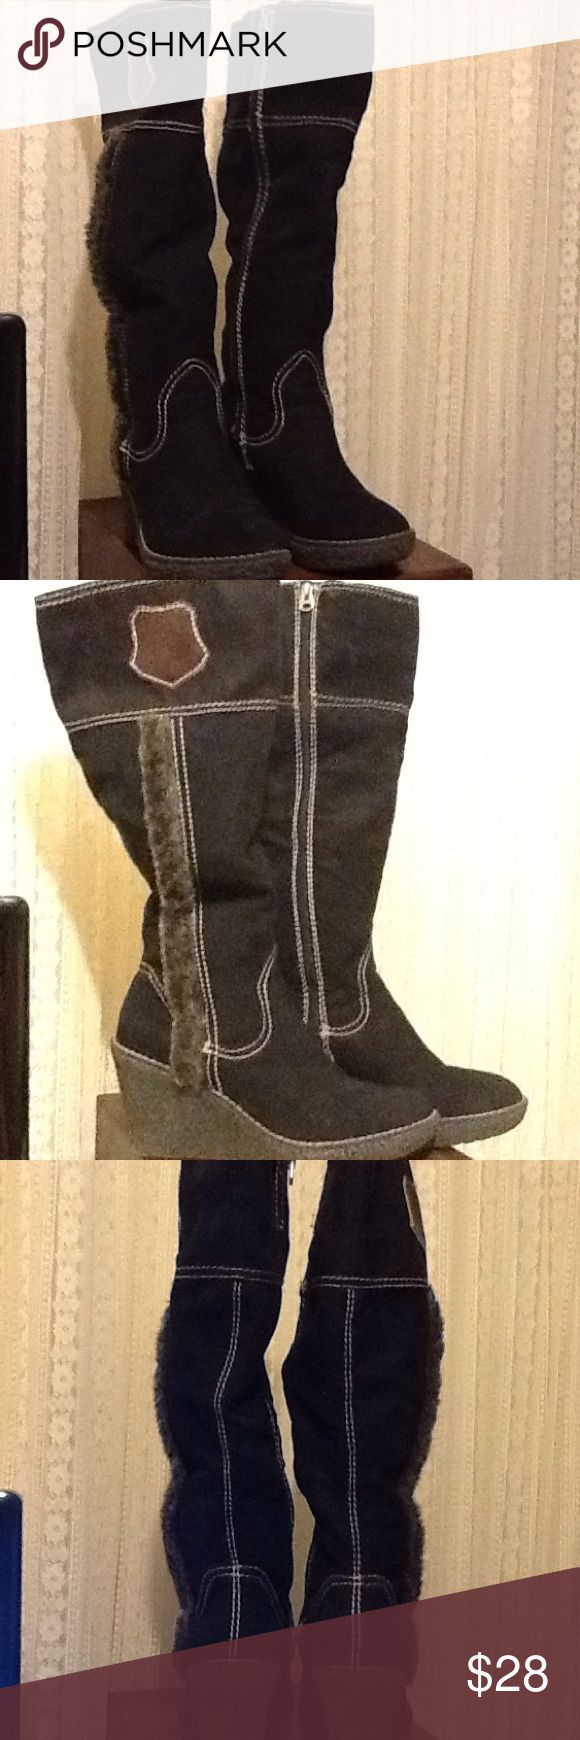 Ladies Winter Boots Wedge Black Black winter boots by Graceland. Zippers on the side. Reads Aspen Mountain Resort. Faux fur on sides. They are in very good condition. Graceland  Shoes Heeled Boots